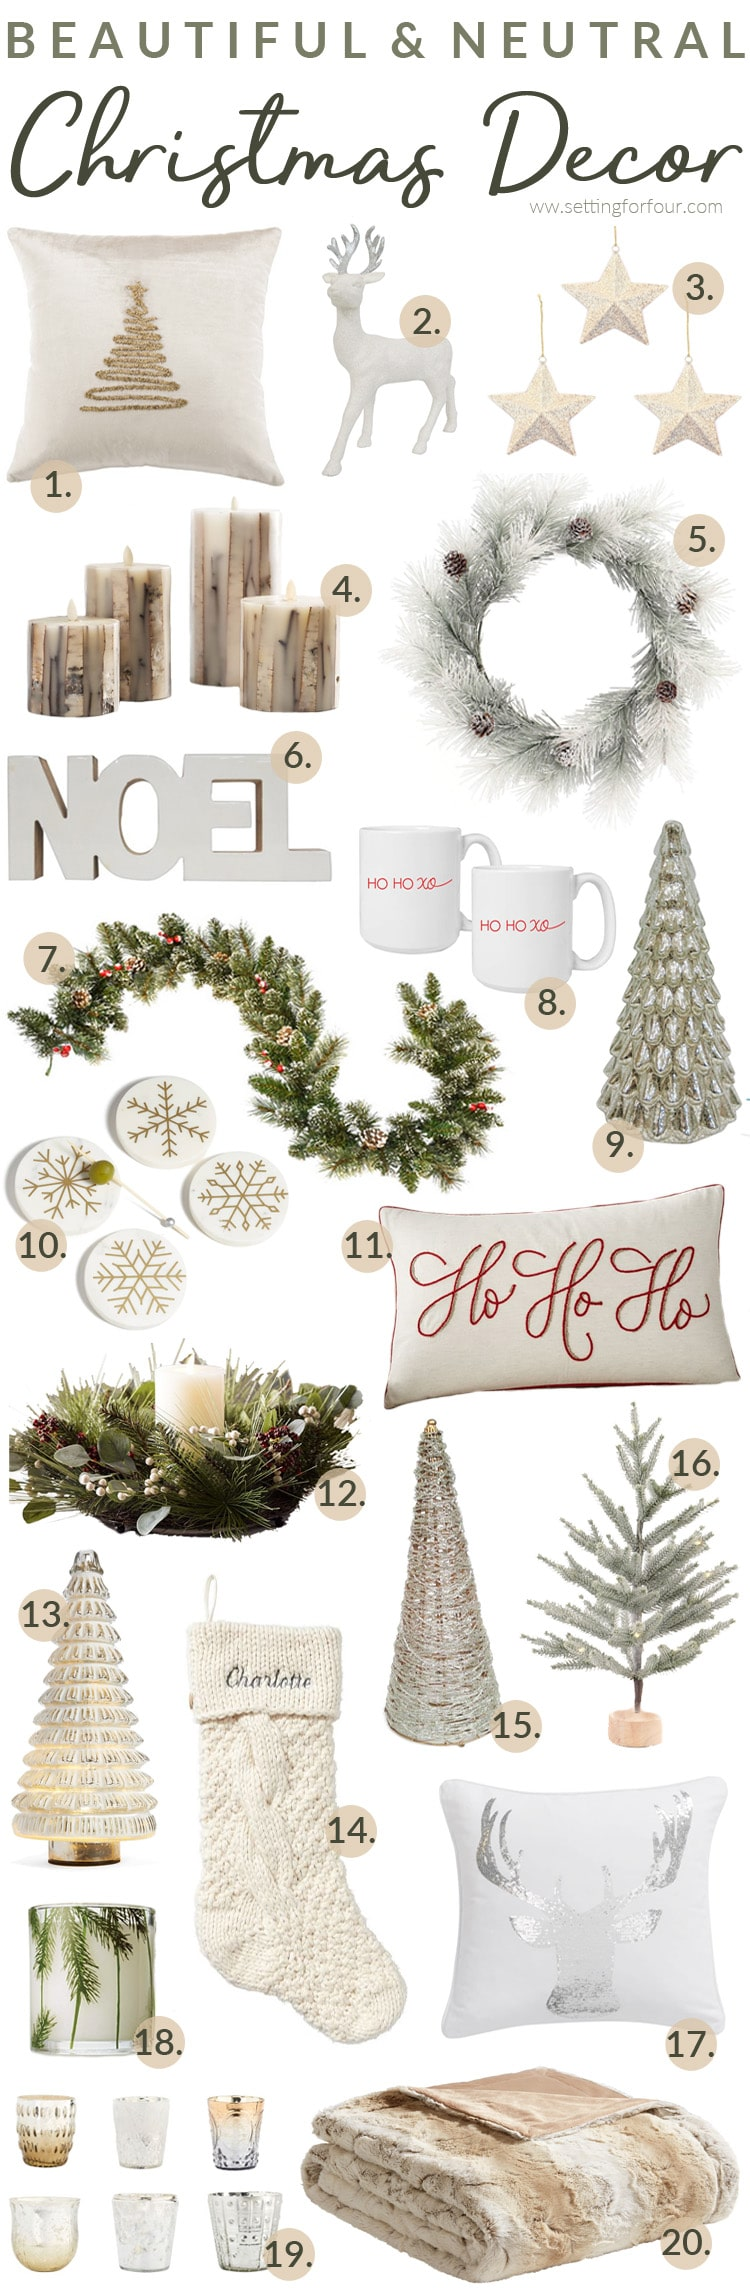 Beautiful Neutral Christmas Decor Ideas For The Home